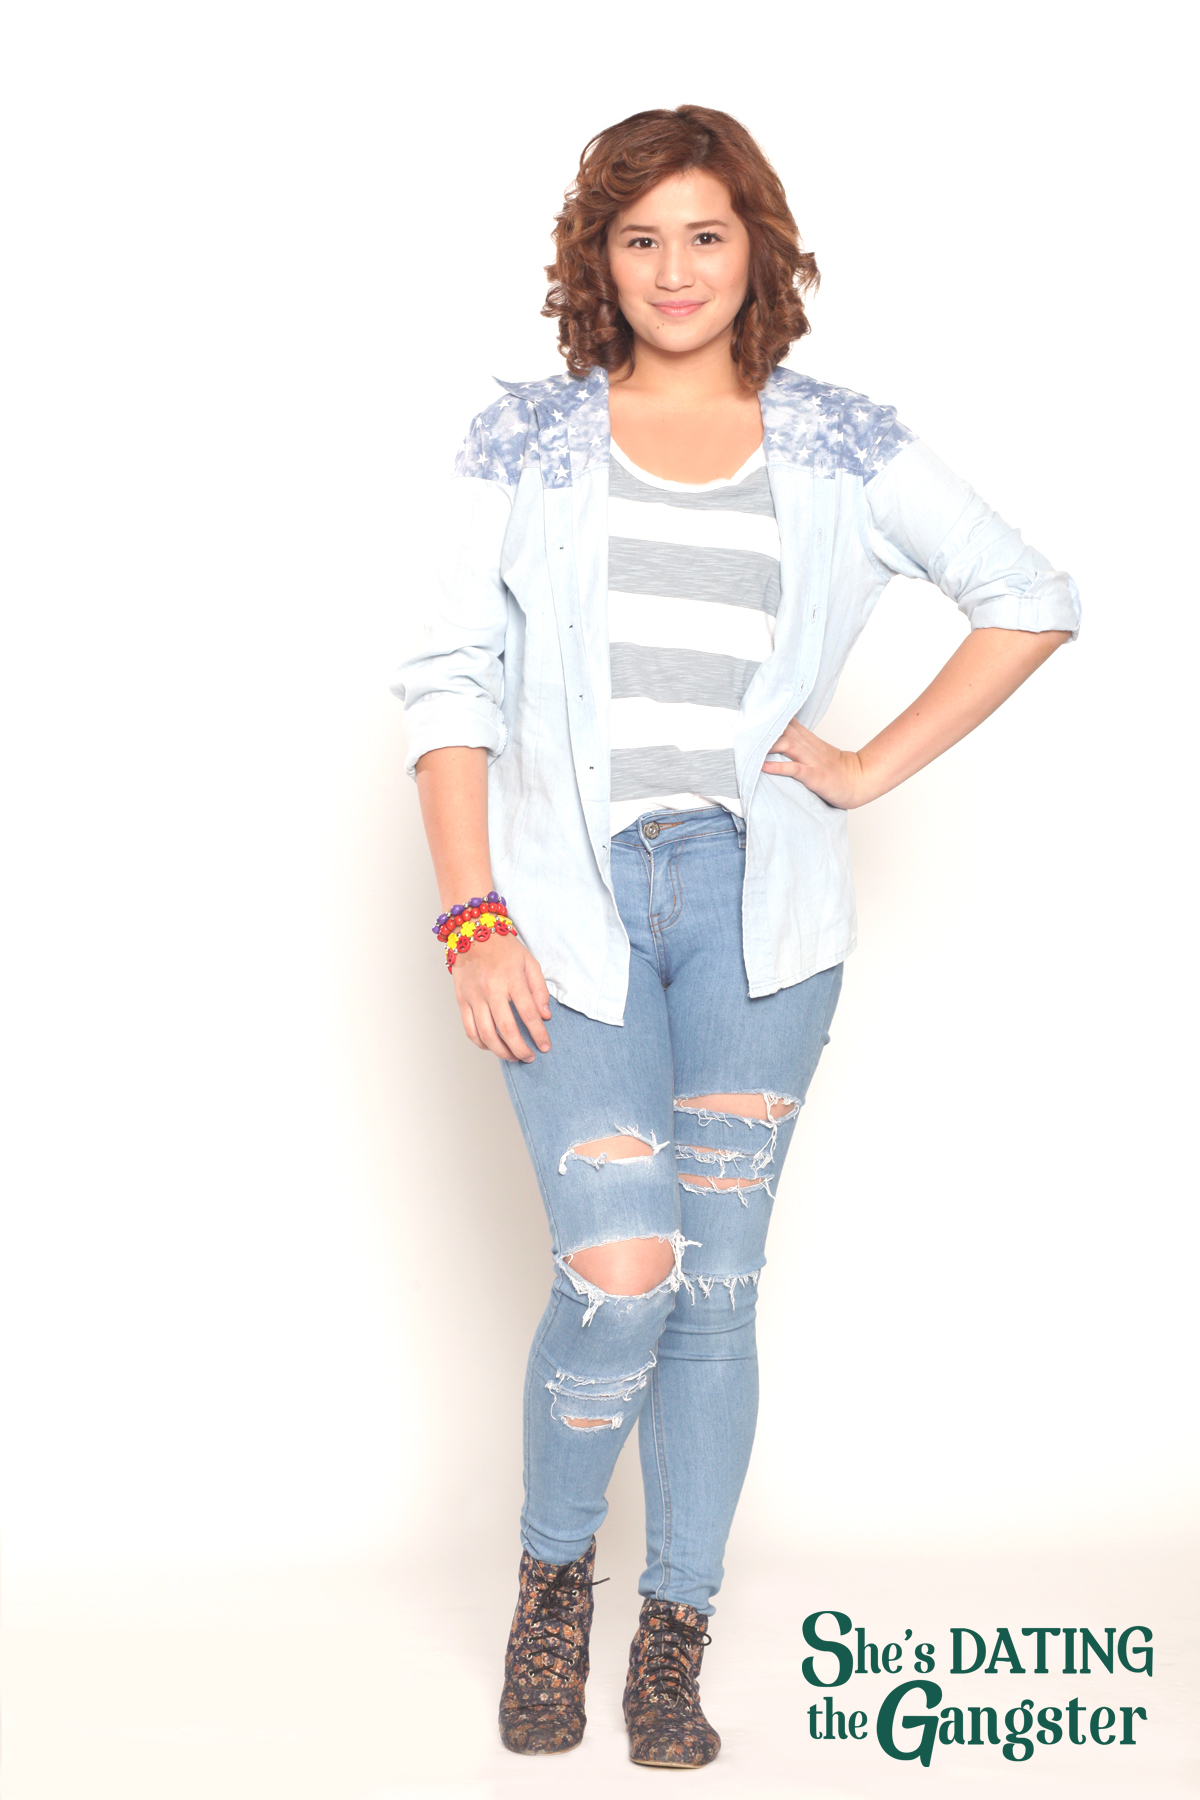 She dating the gangster free download